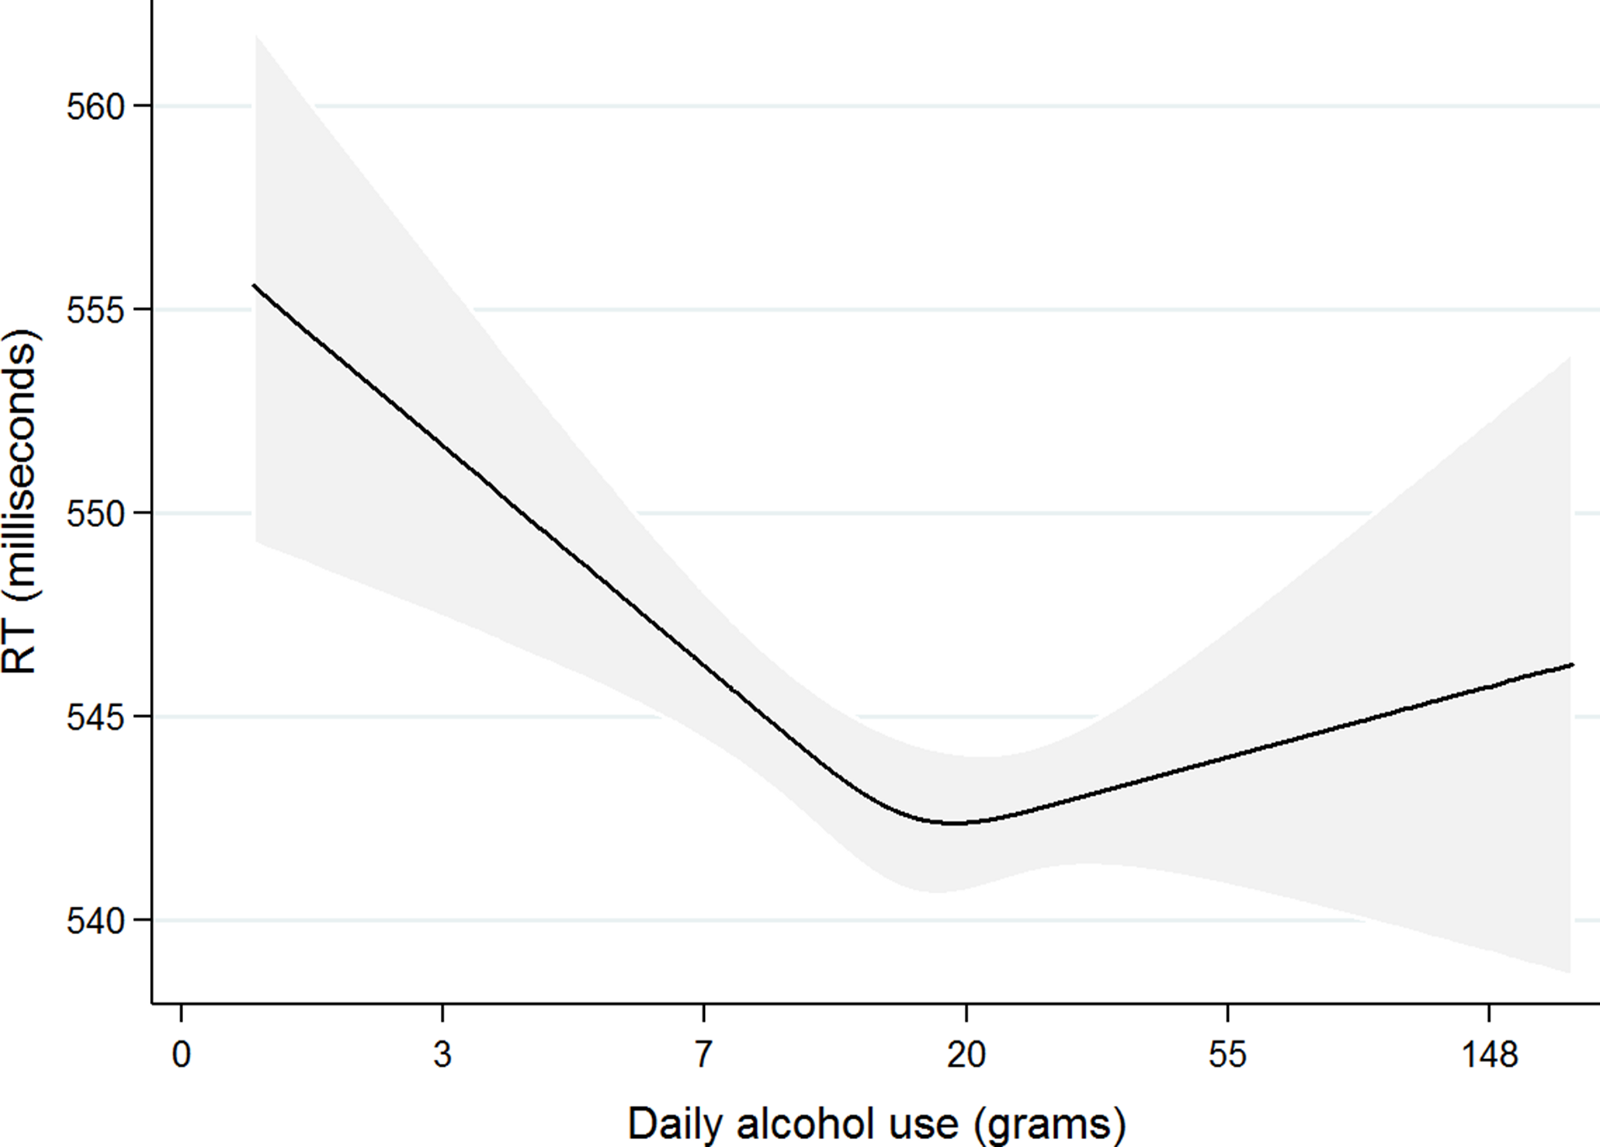 alcohol consumption research paper Moderate alcohol consumption boosts body's immune system, study suggests date: december 17, 2013 source: oregon health & science university summary.